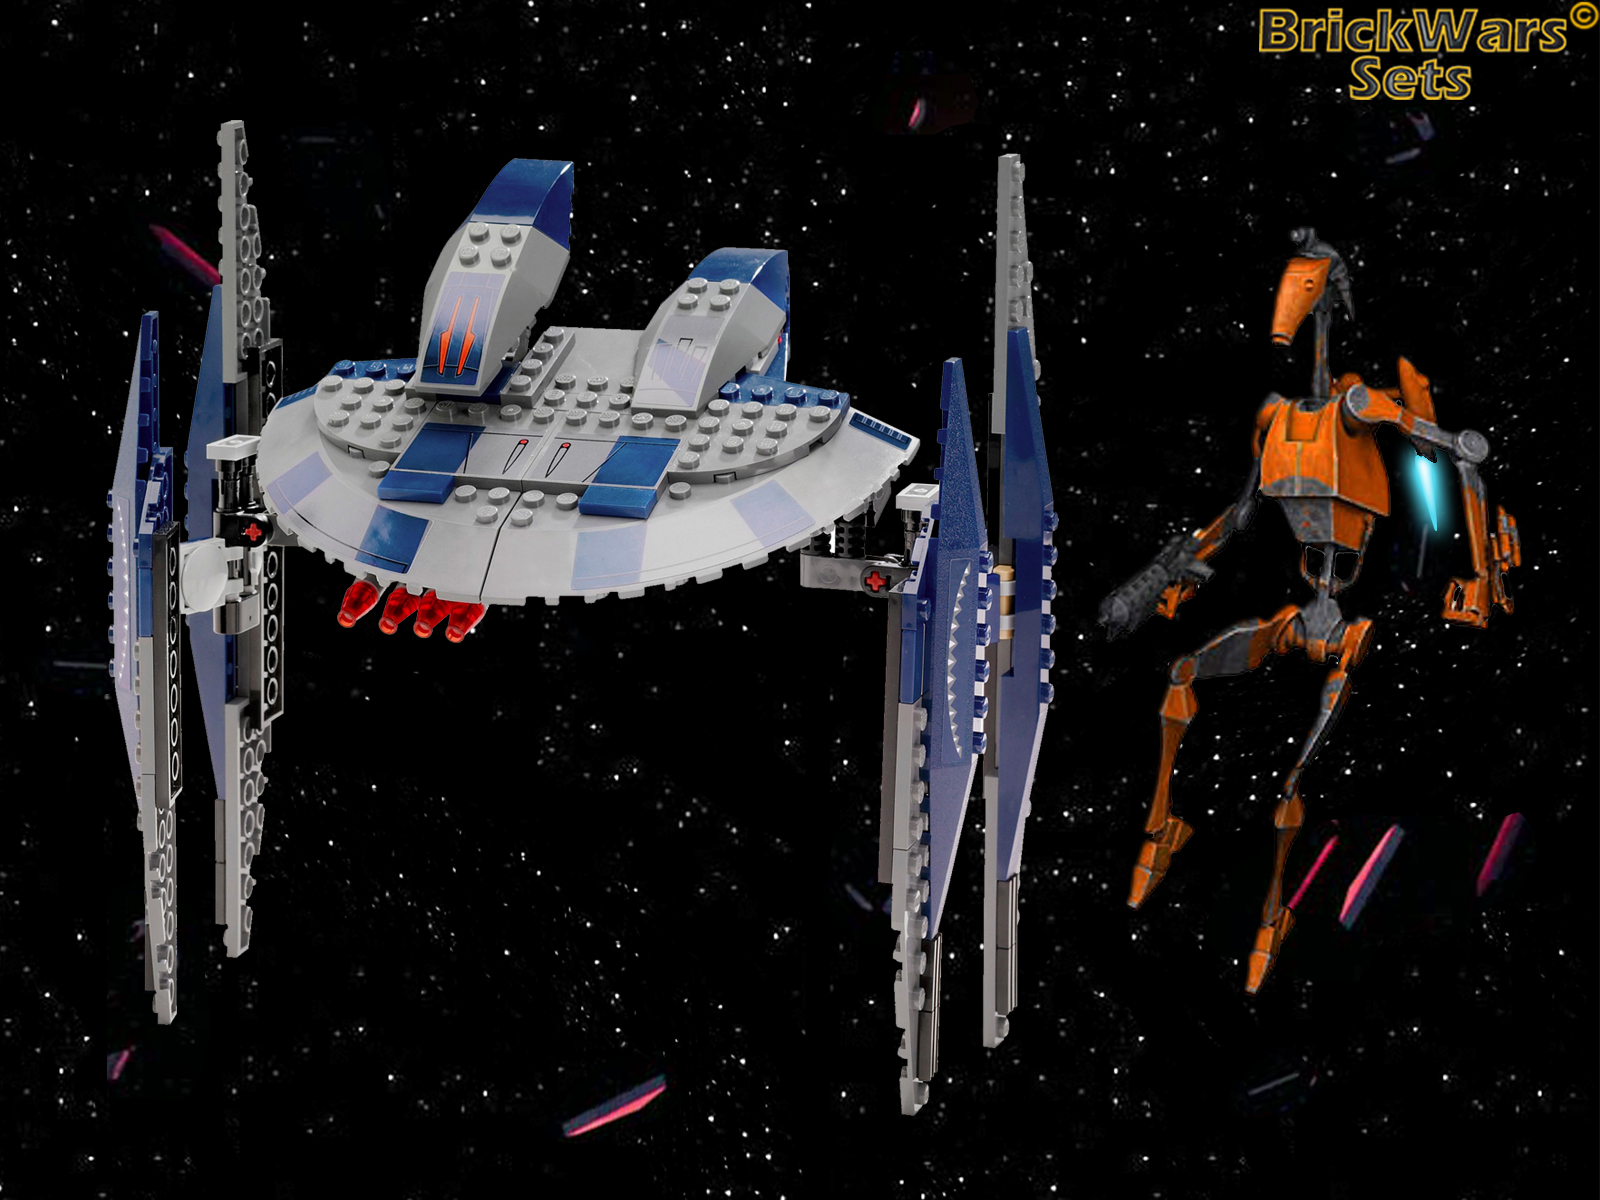 Brickwars Sets Hyena Droid Bomber Lego Star Wars Free Wallpaper